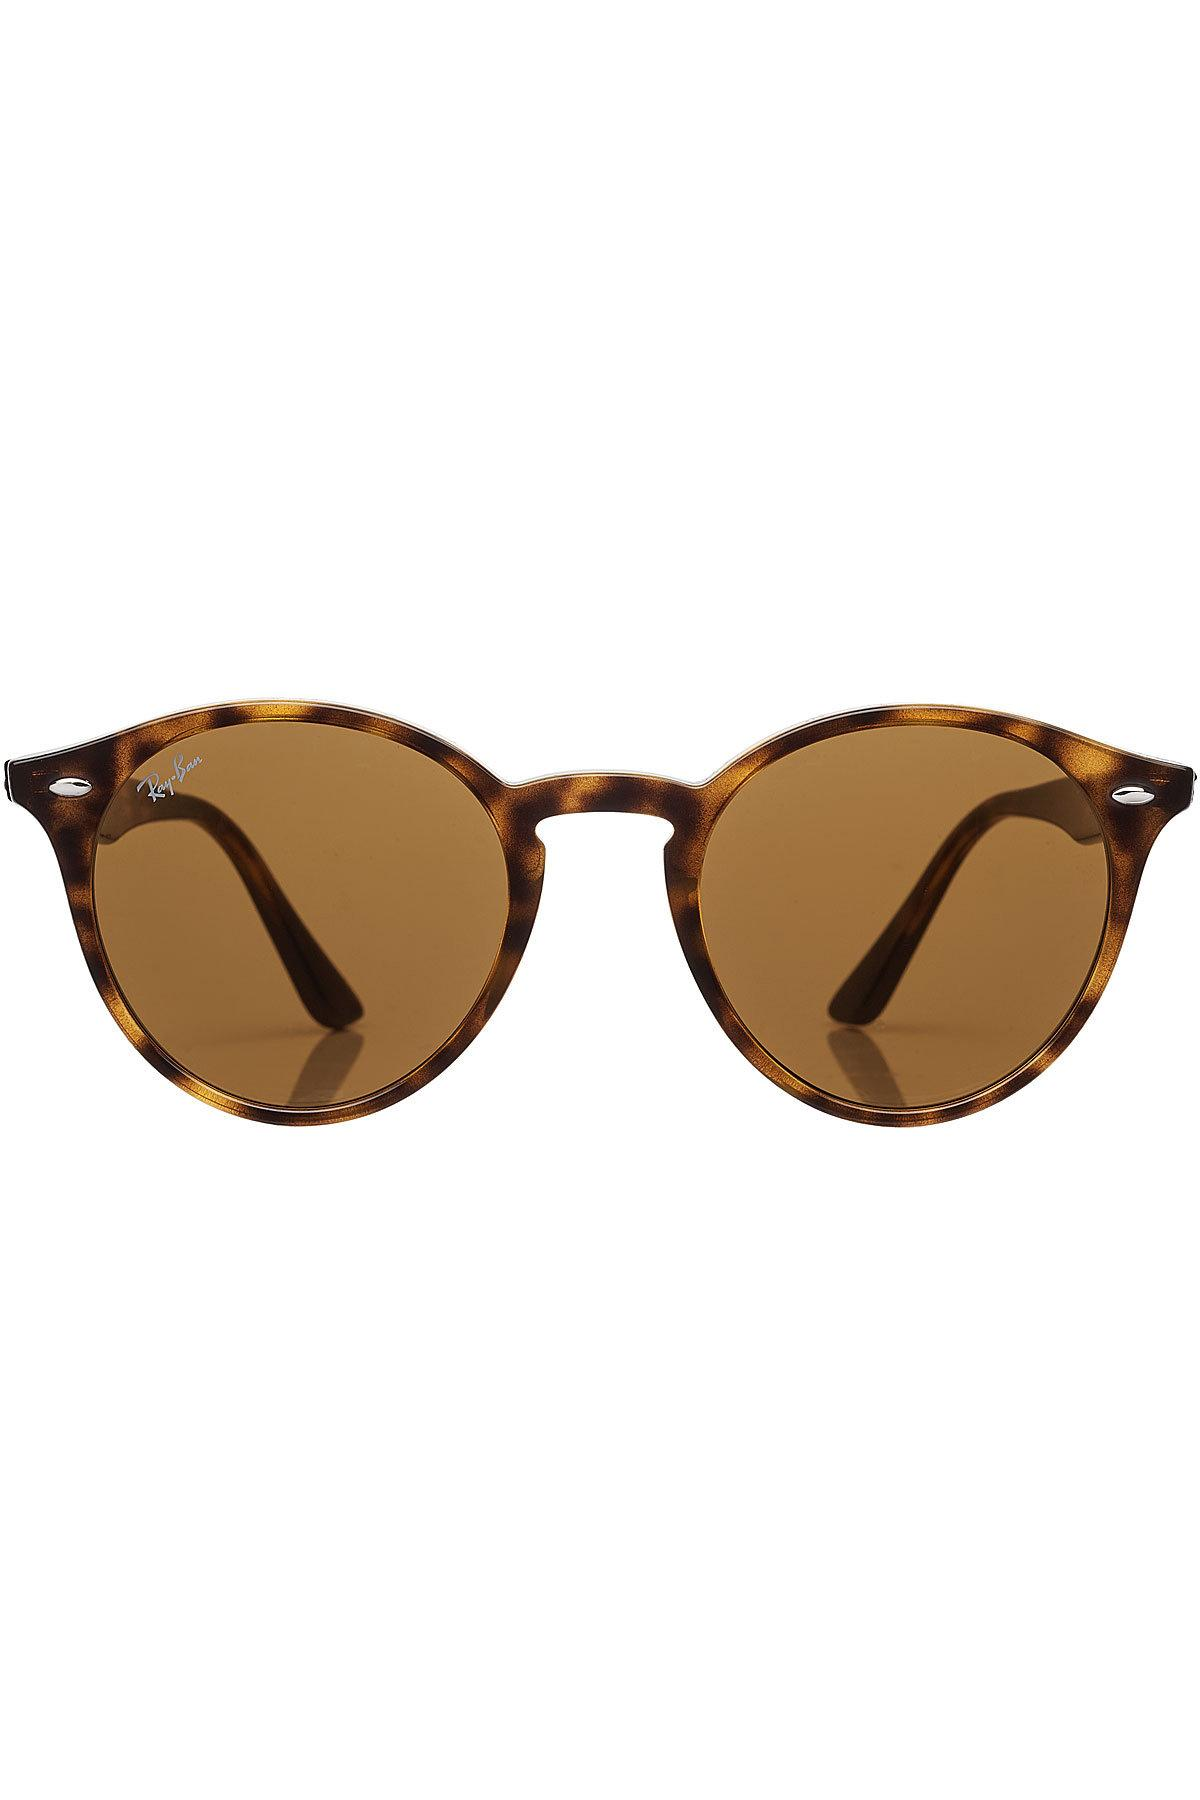 Ray Ban Rb2180 Sunglasses In Brown